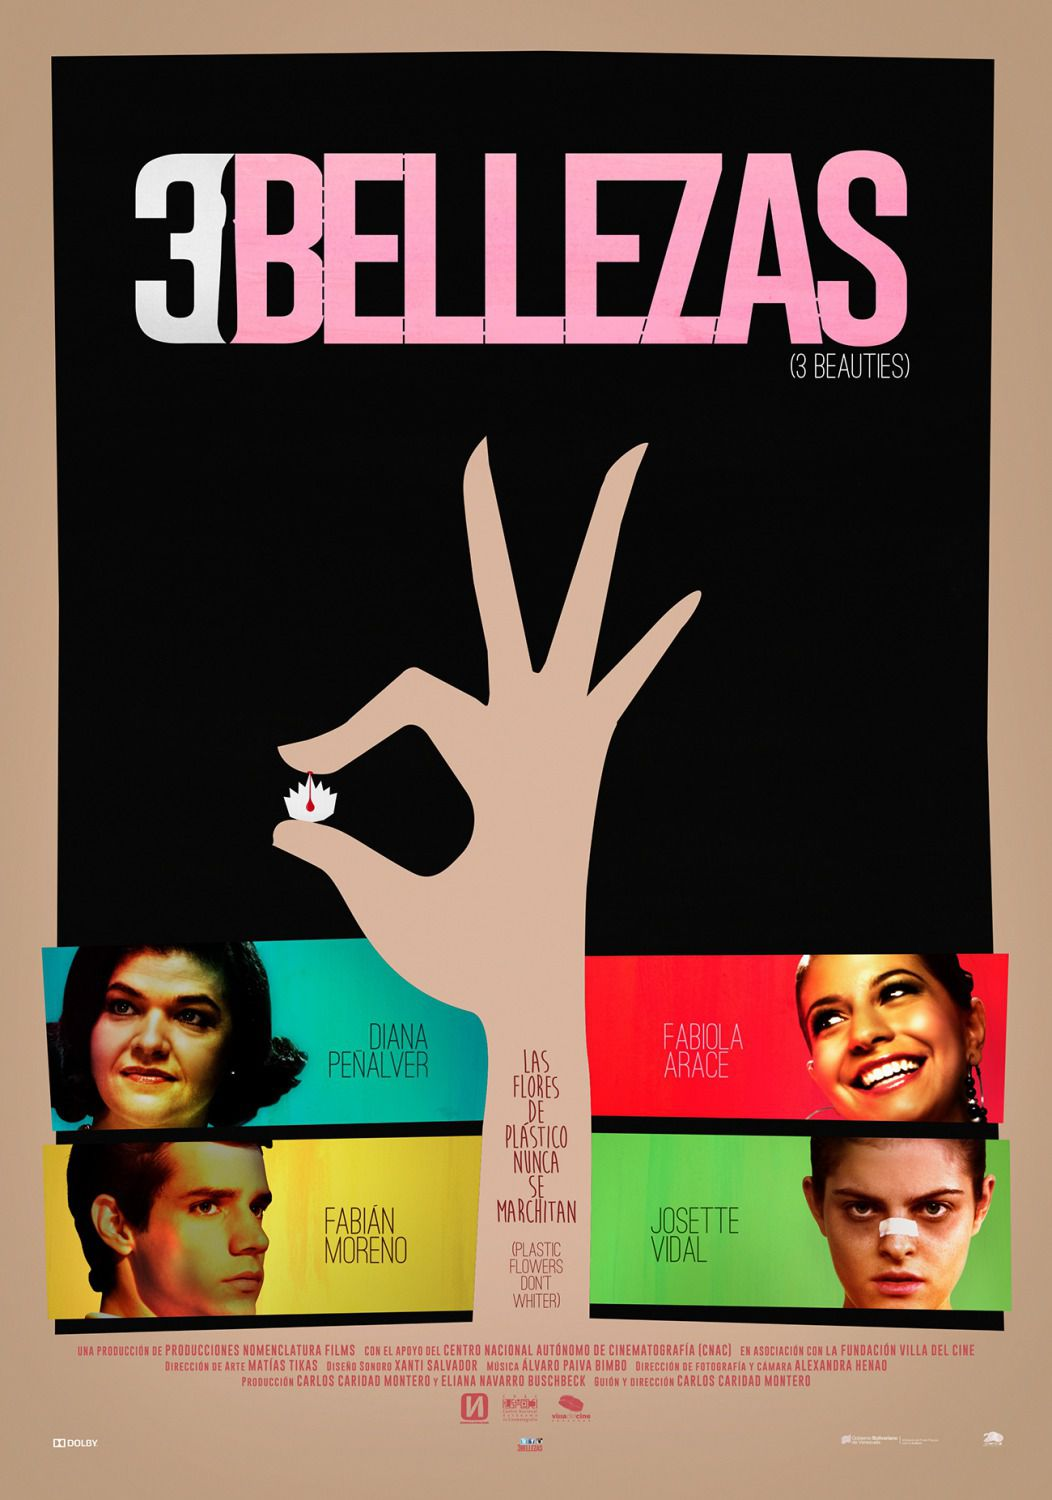 3 Bellezas - 3 Beauties - 3 Bellezze - Diana Penalver - comedy film poster 2018